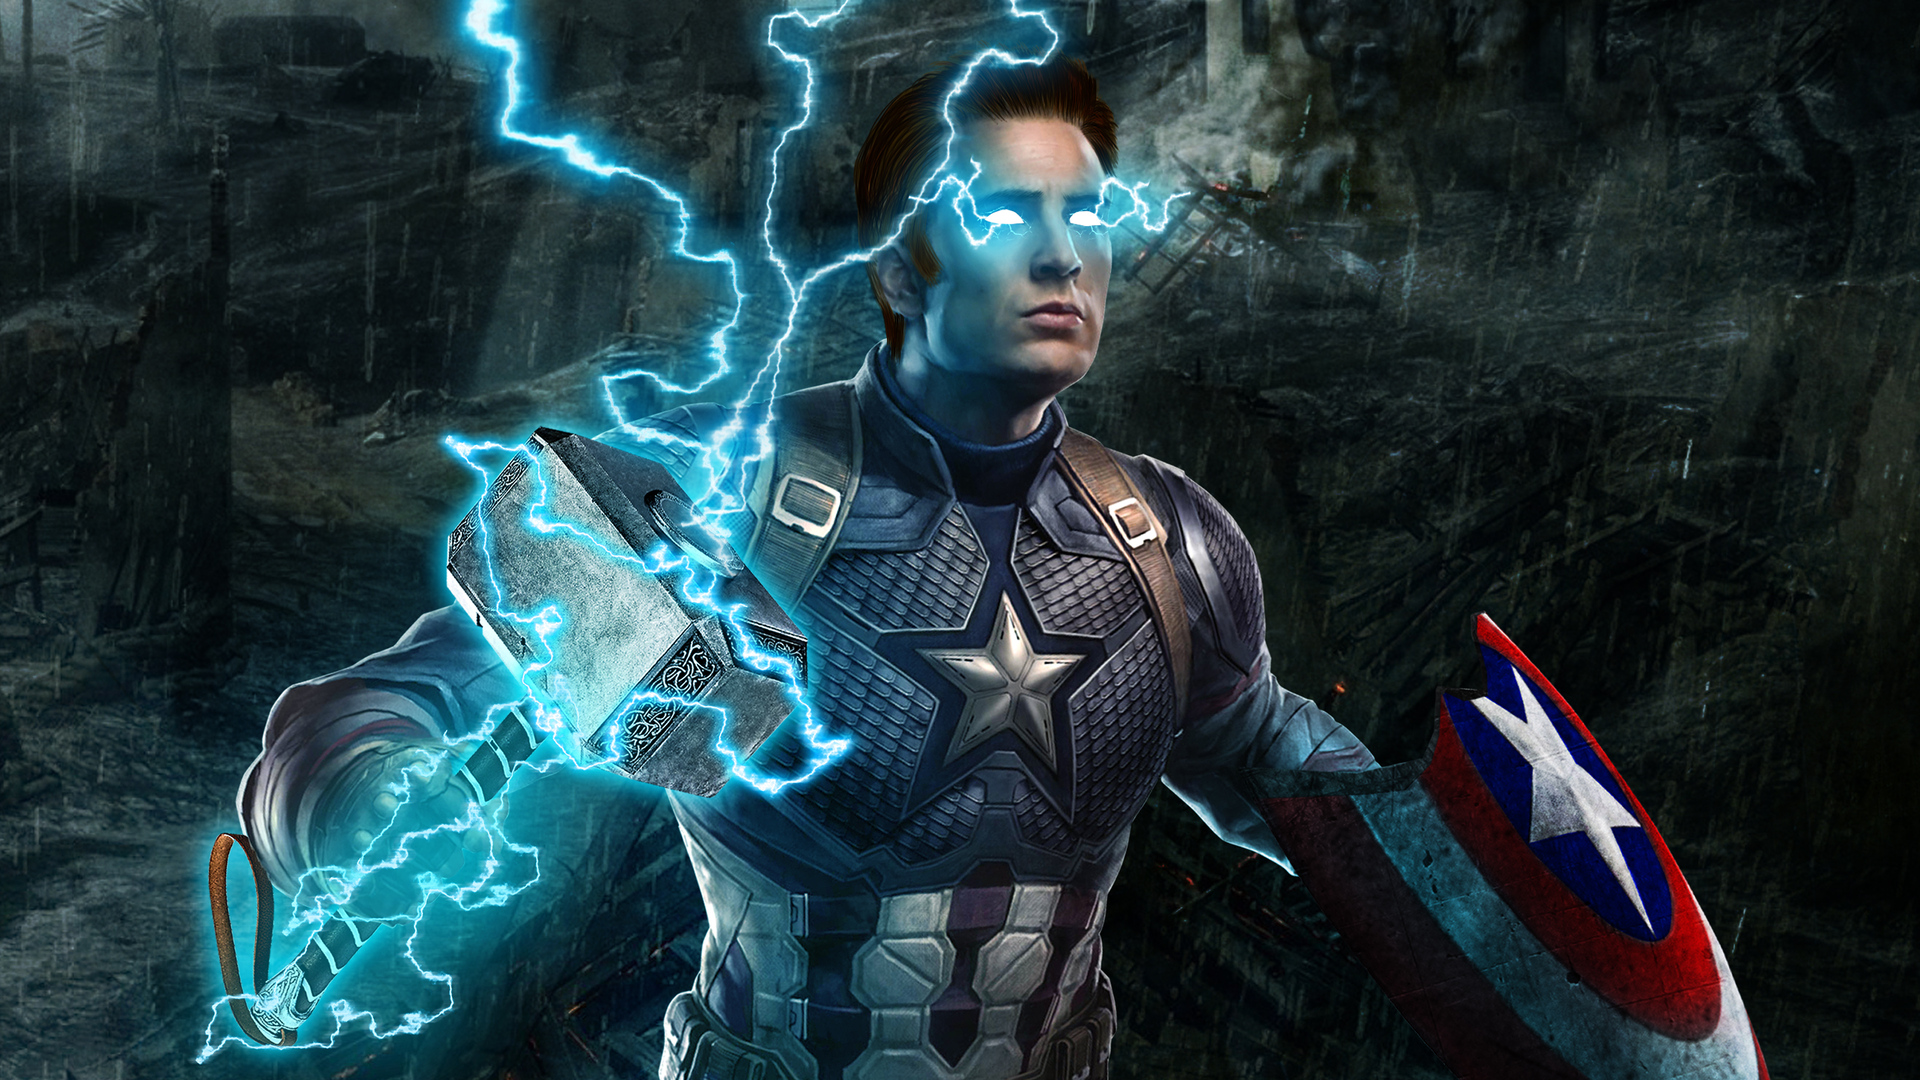 1920x1080 Captain America Mjolnir Avengers Endgame 4k Laptop Full